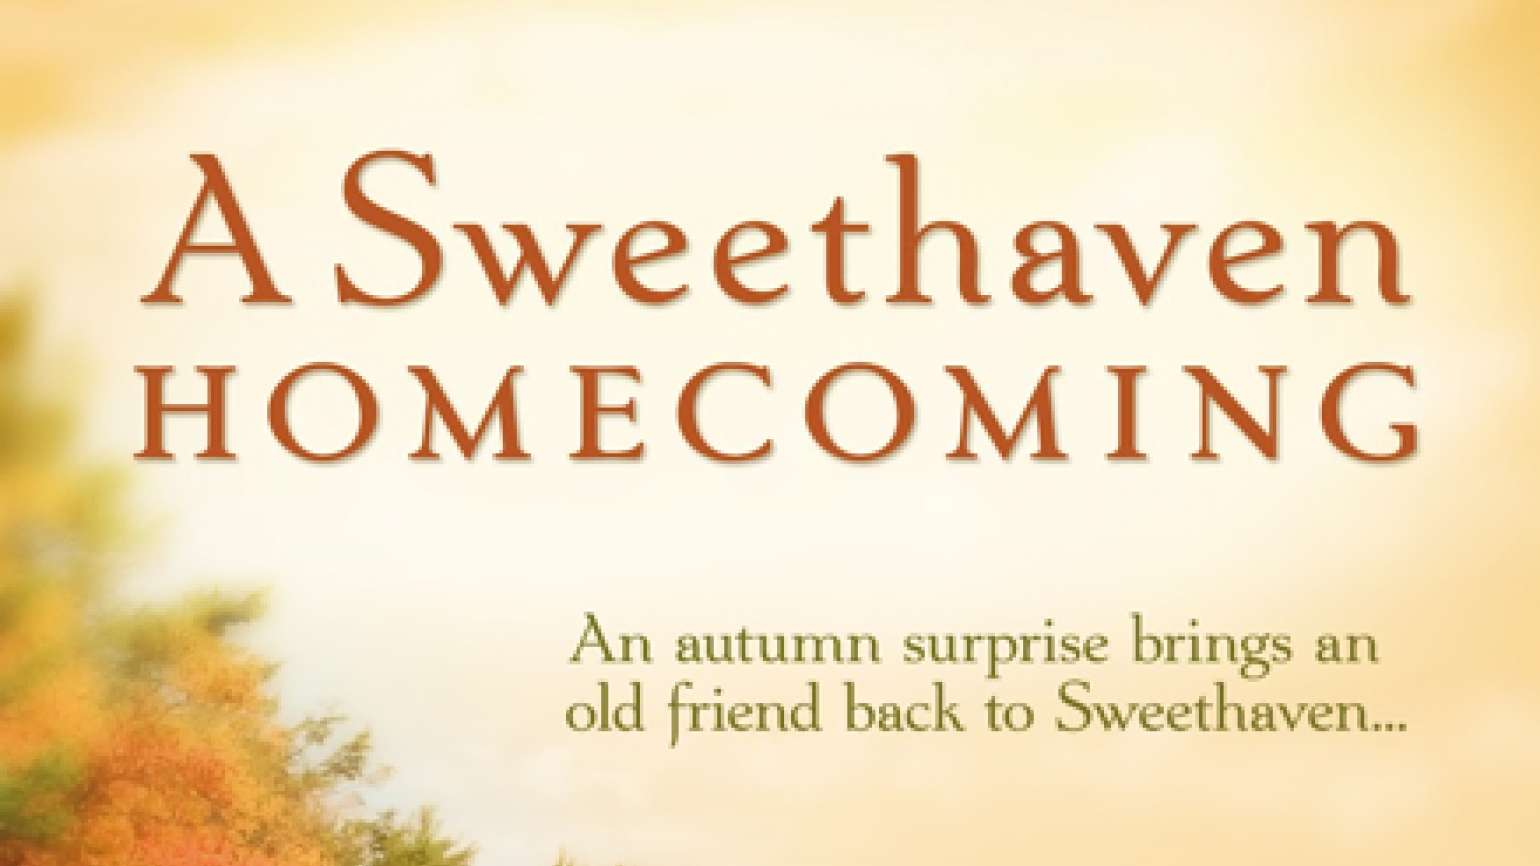 The cover of A Sweethaven Homecoming, by Courtney Walsh